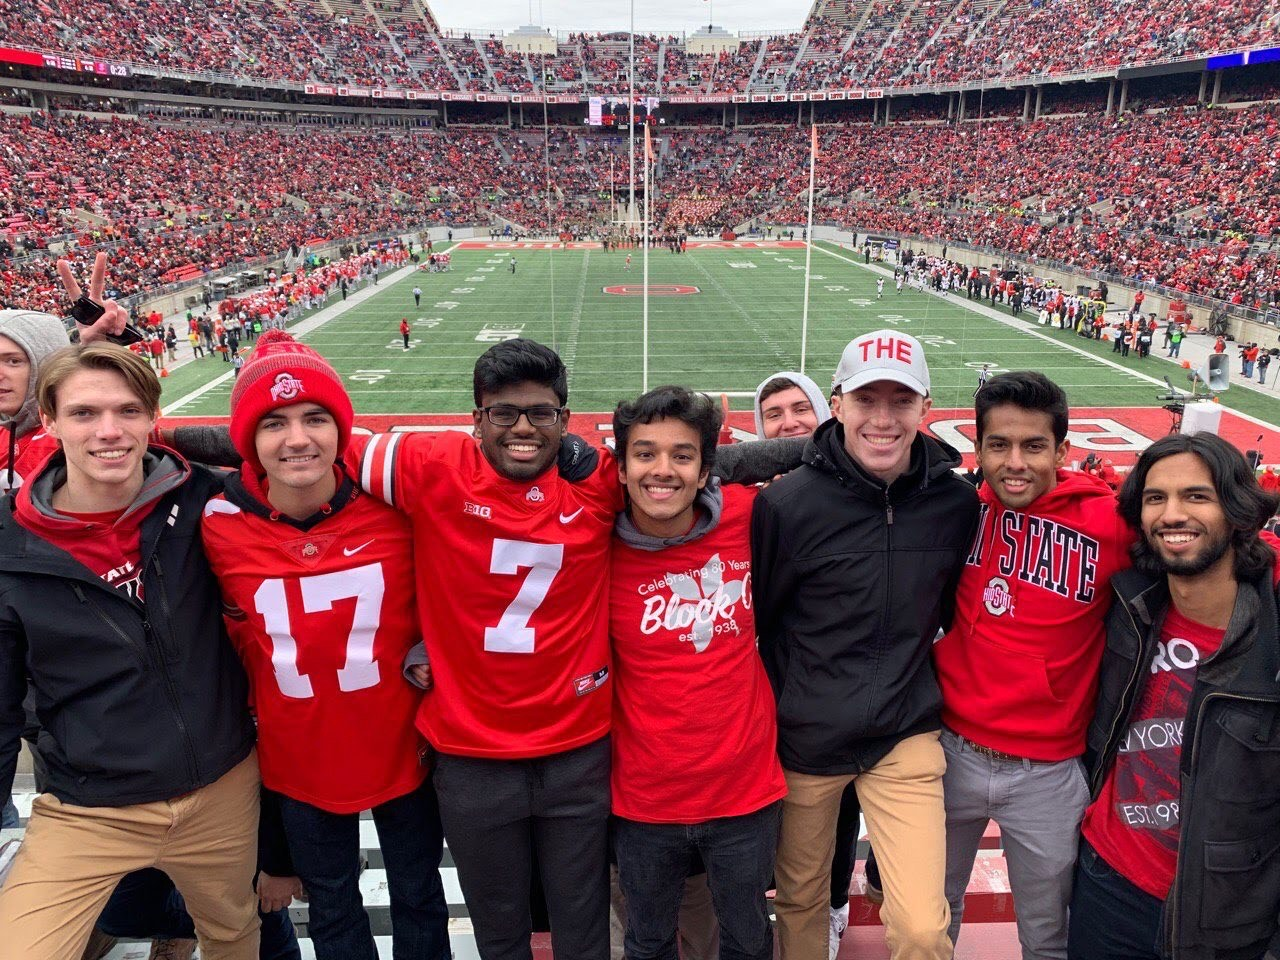 Saarthak with friends at an Ohio State football game